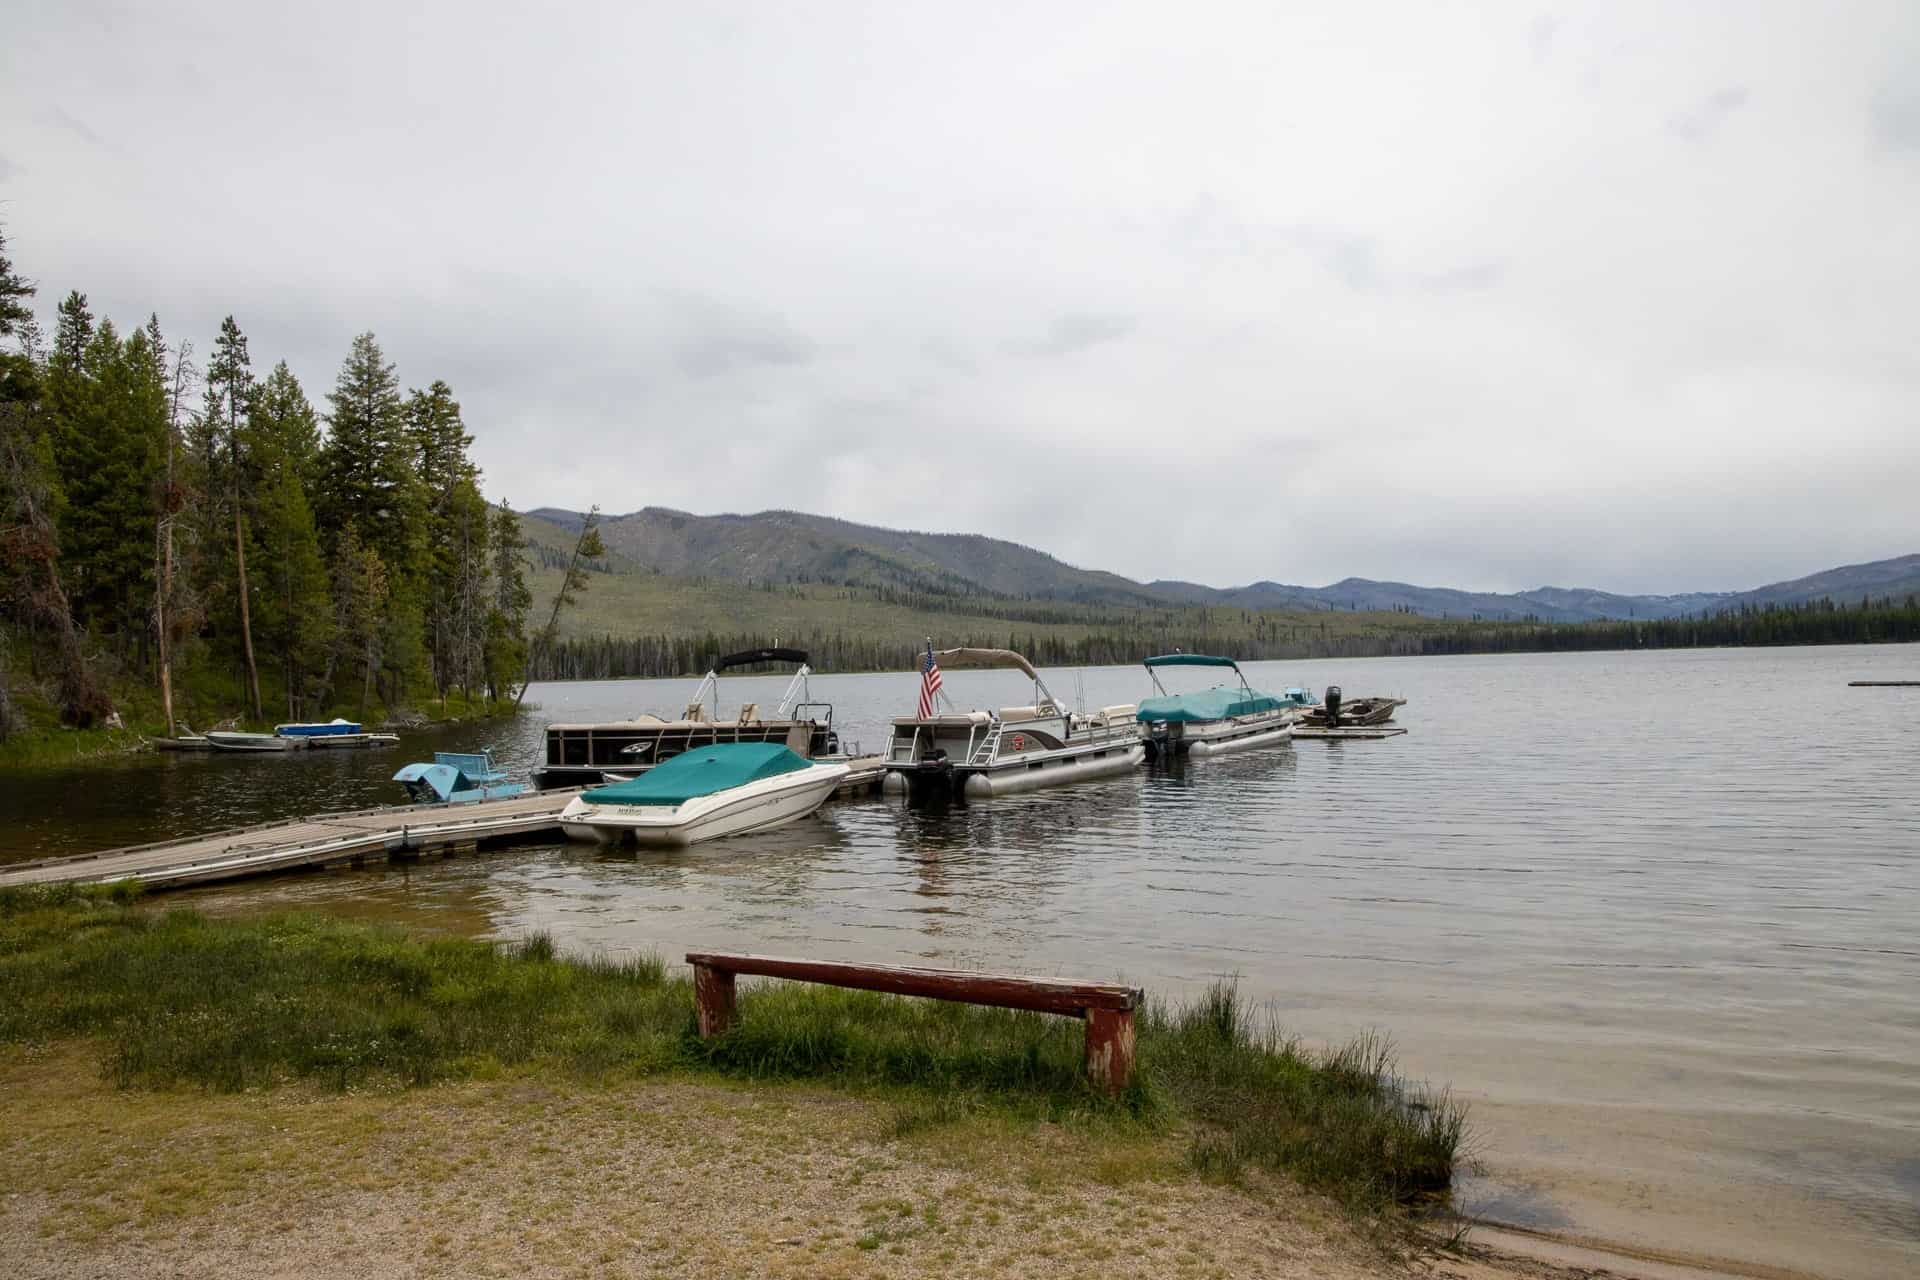 The marina at Warm Lake in Cascade idaho